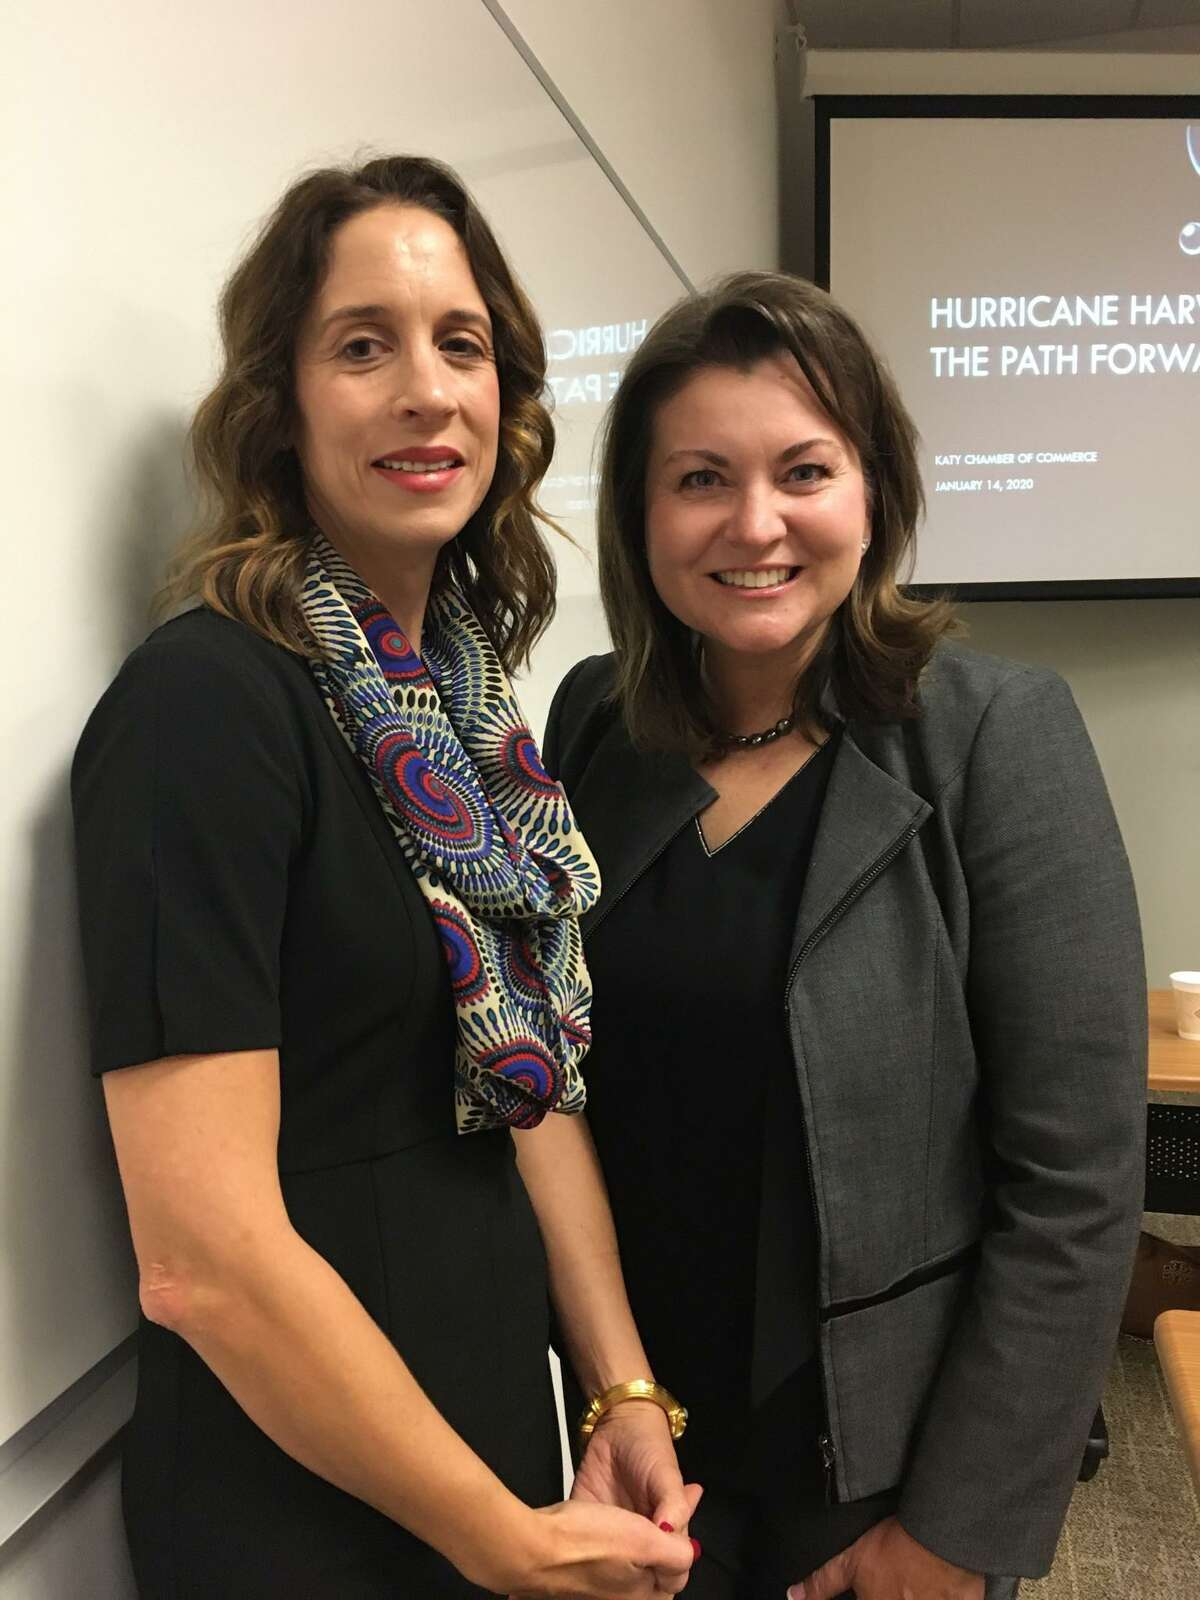 Wendy Duncan, right, Willow Fork Drainage District assistant vice president, talks with Melissa Washington, Texas General Land Office community outreach coordinator for Austin, Brazoria, Fort Bend, Galveston and Waller counties, prior to the Jan. 14 Katy Area Chamber of Commerce Luncheon. Duncan, the keynote speaker, talked about Hurricane Harvey and the Path Forward.